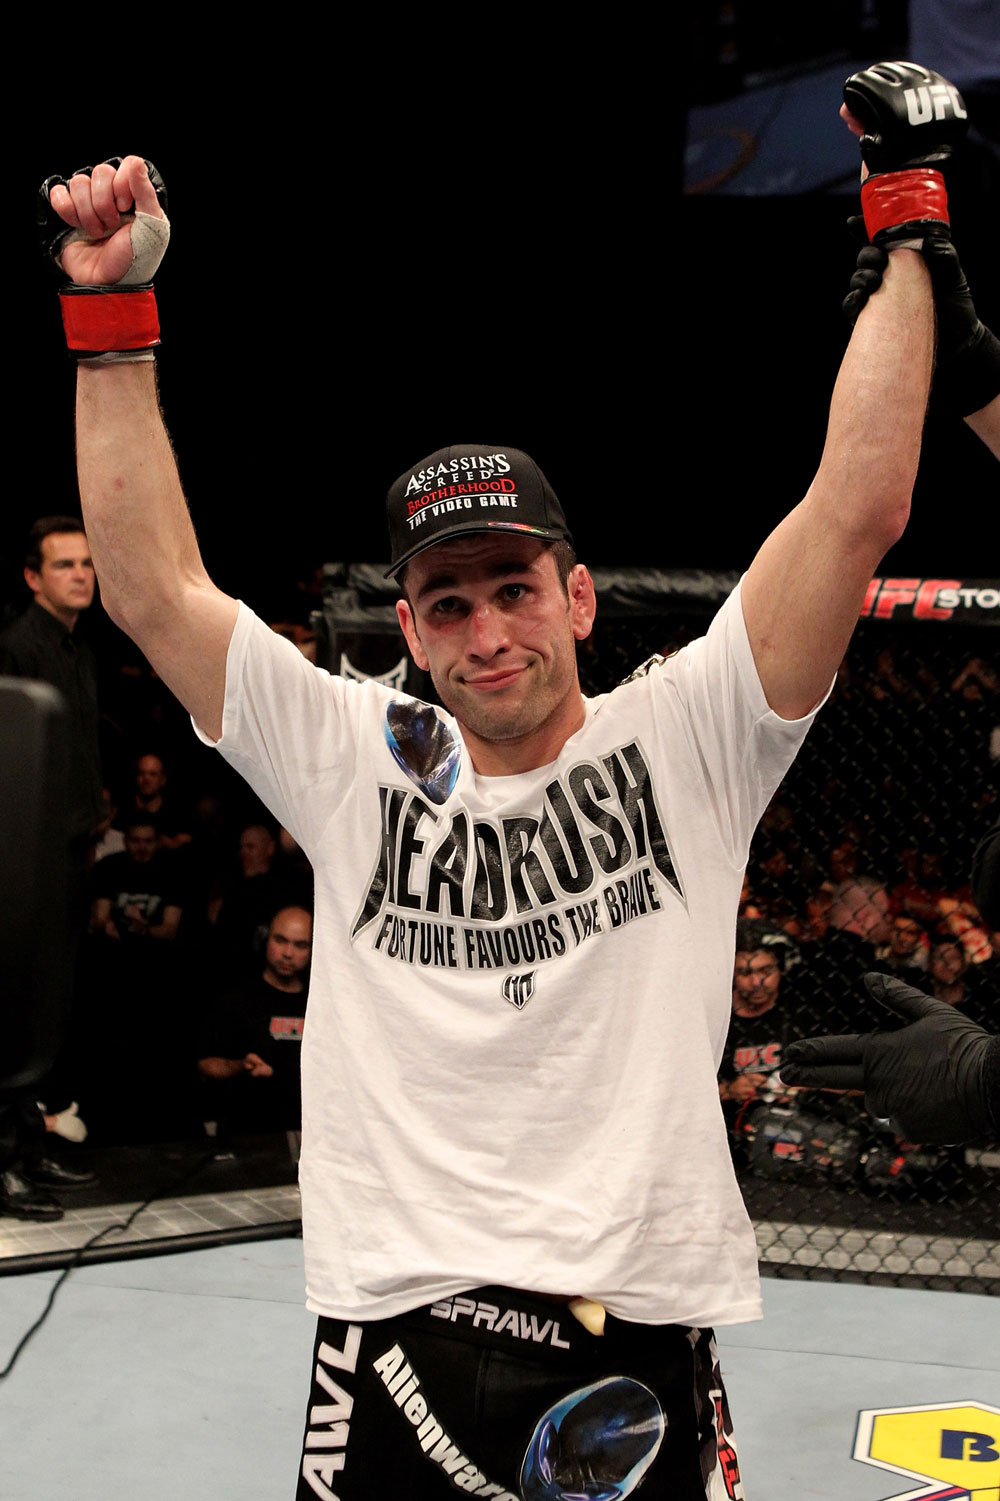 Amir Sadollah of the USA celebrates his unanimous points victory over Peter Sobatta of Germany during their UFC Welterweight bout at the Konig Pilsner Arena on November 13, 2010 in Oberhausen, Germany. (Photo by Josh Hedges/Zuffa LLC/Zuffa LLC)